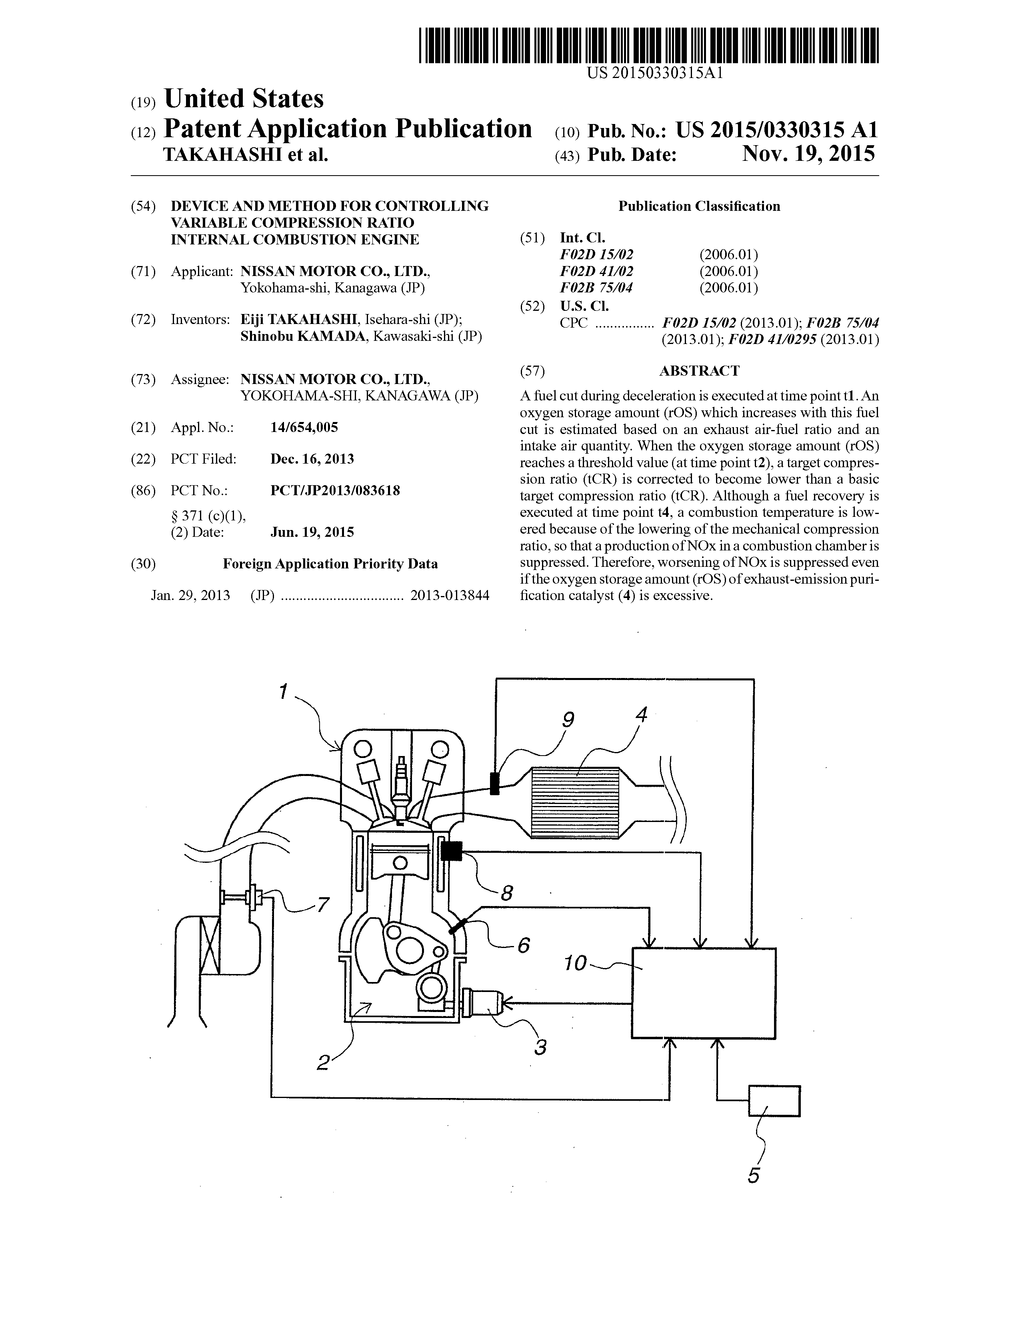 Device And Method For Controlling Variable Compression Ratio Nissan Engine Diagram Internal Combustion Schematic Image 01